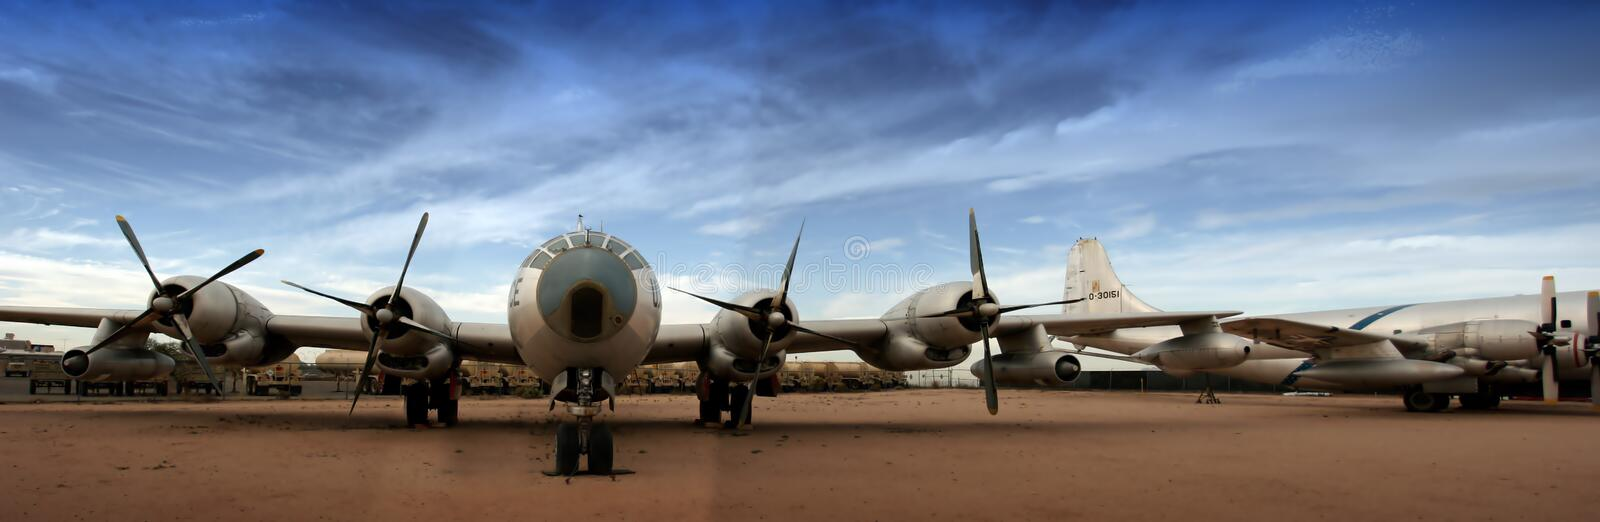 Boing B-29 Superfortress (grande panorama) immagine stock